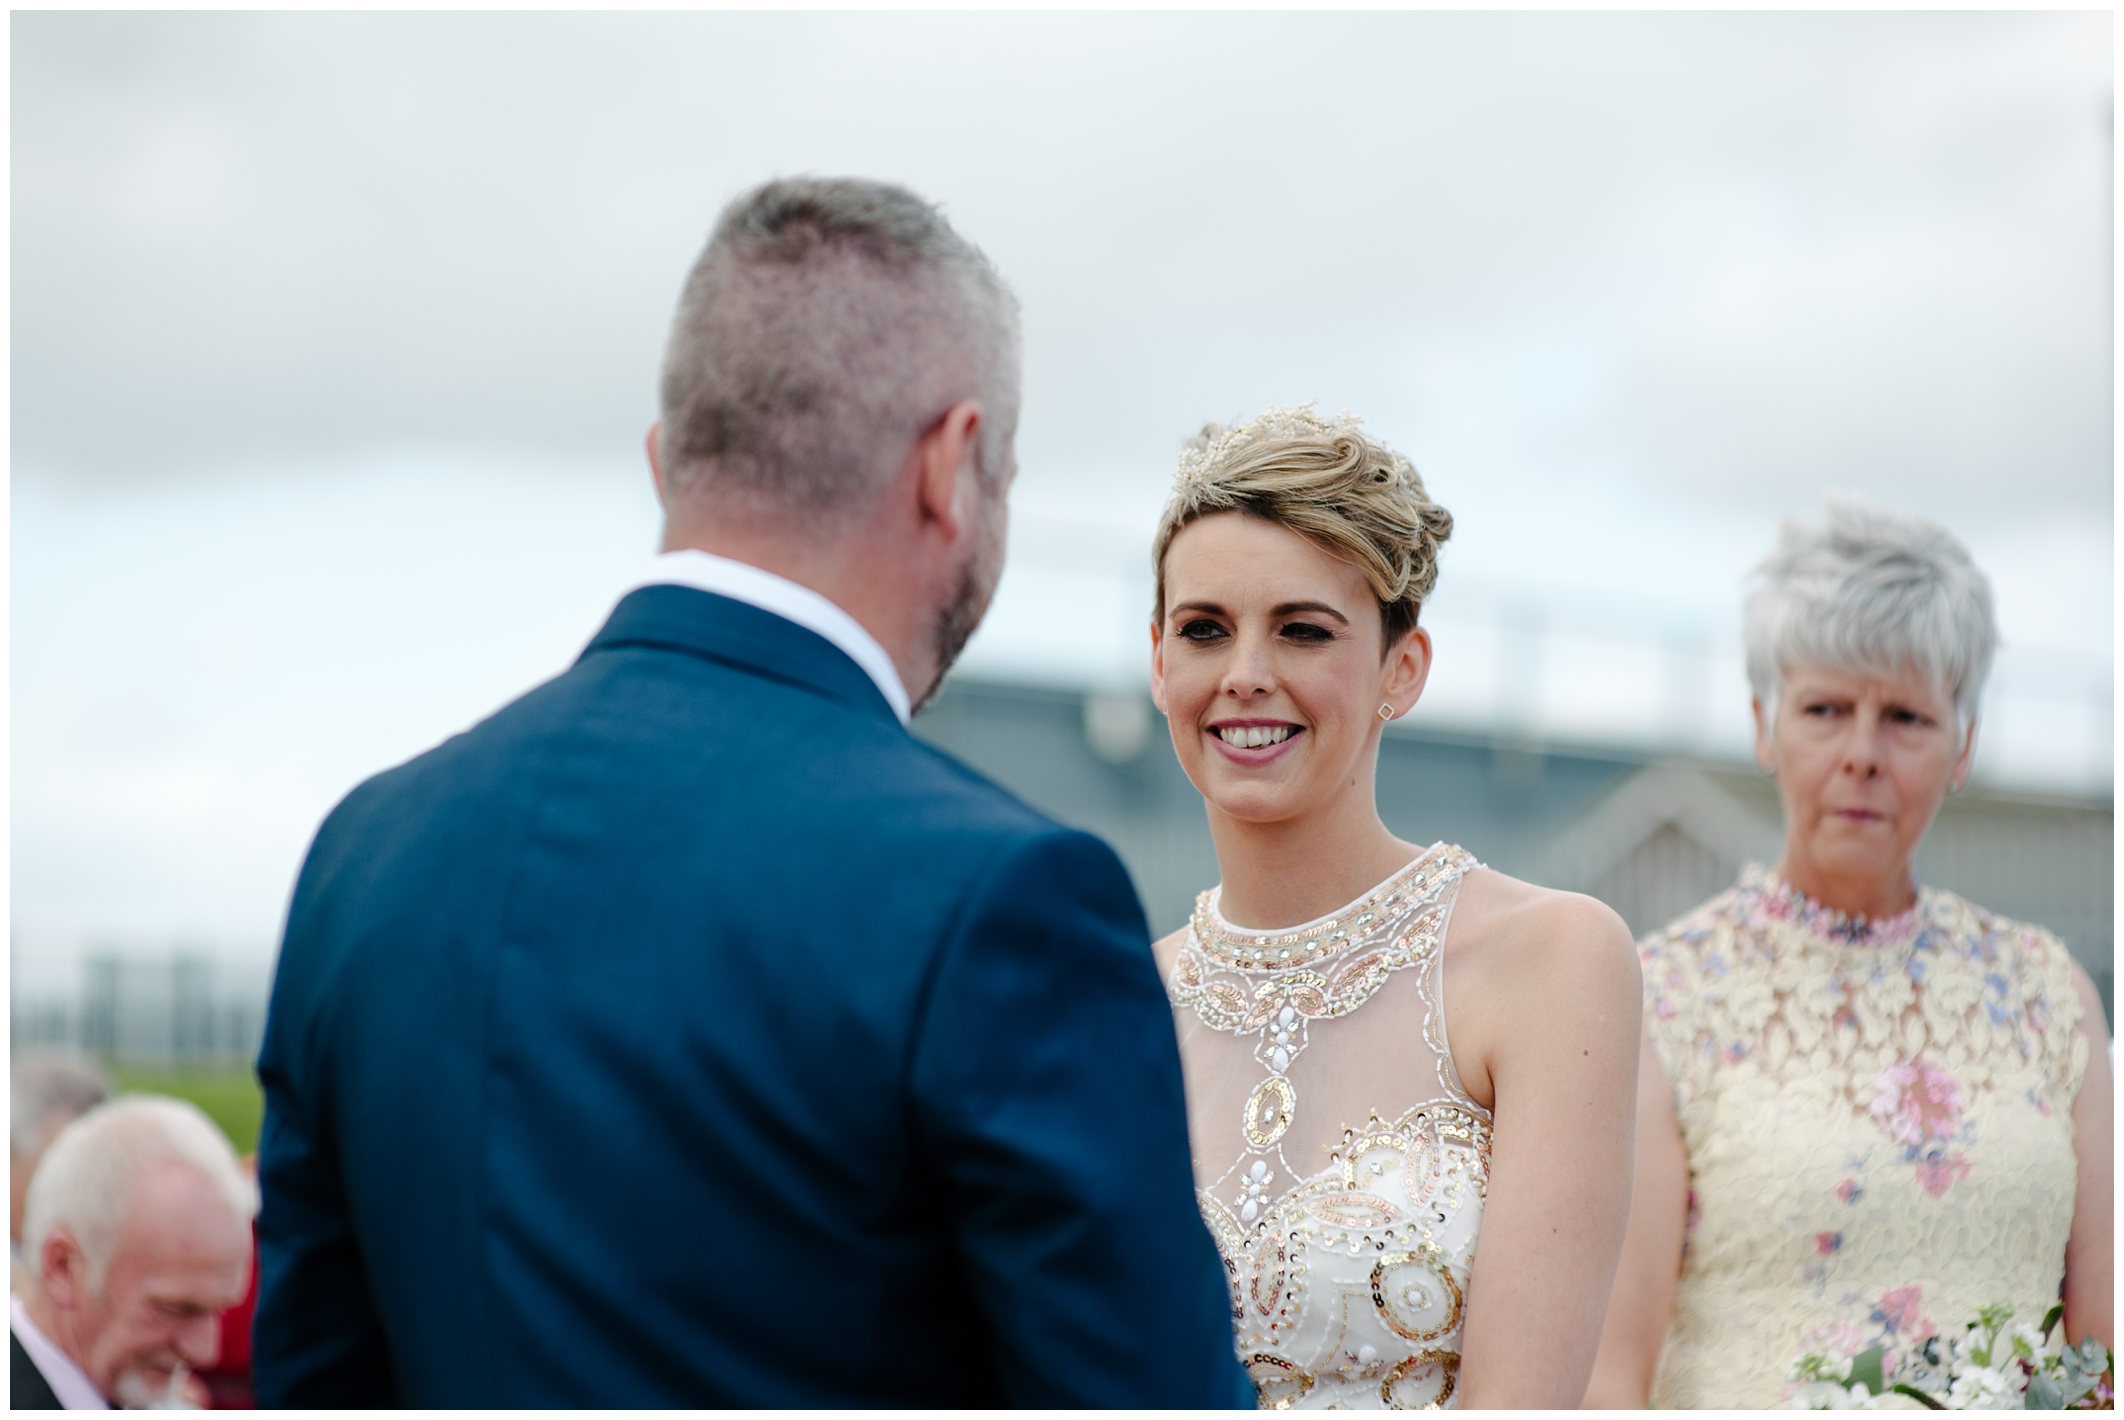 christina_stephen_hill_of_the_oneill_dungannon_wedding_jude_browne_photography_0021.jpg